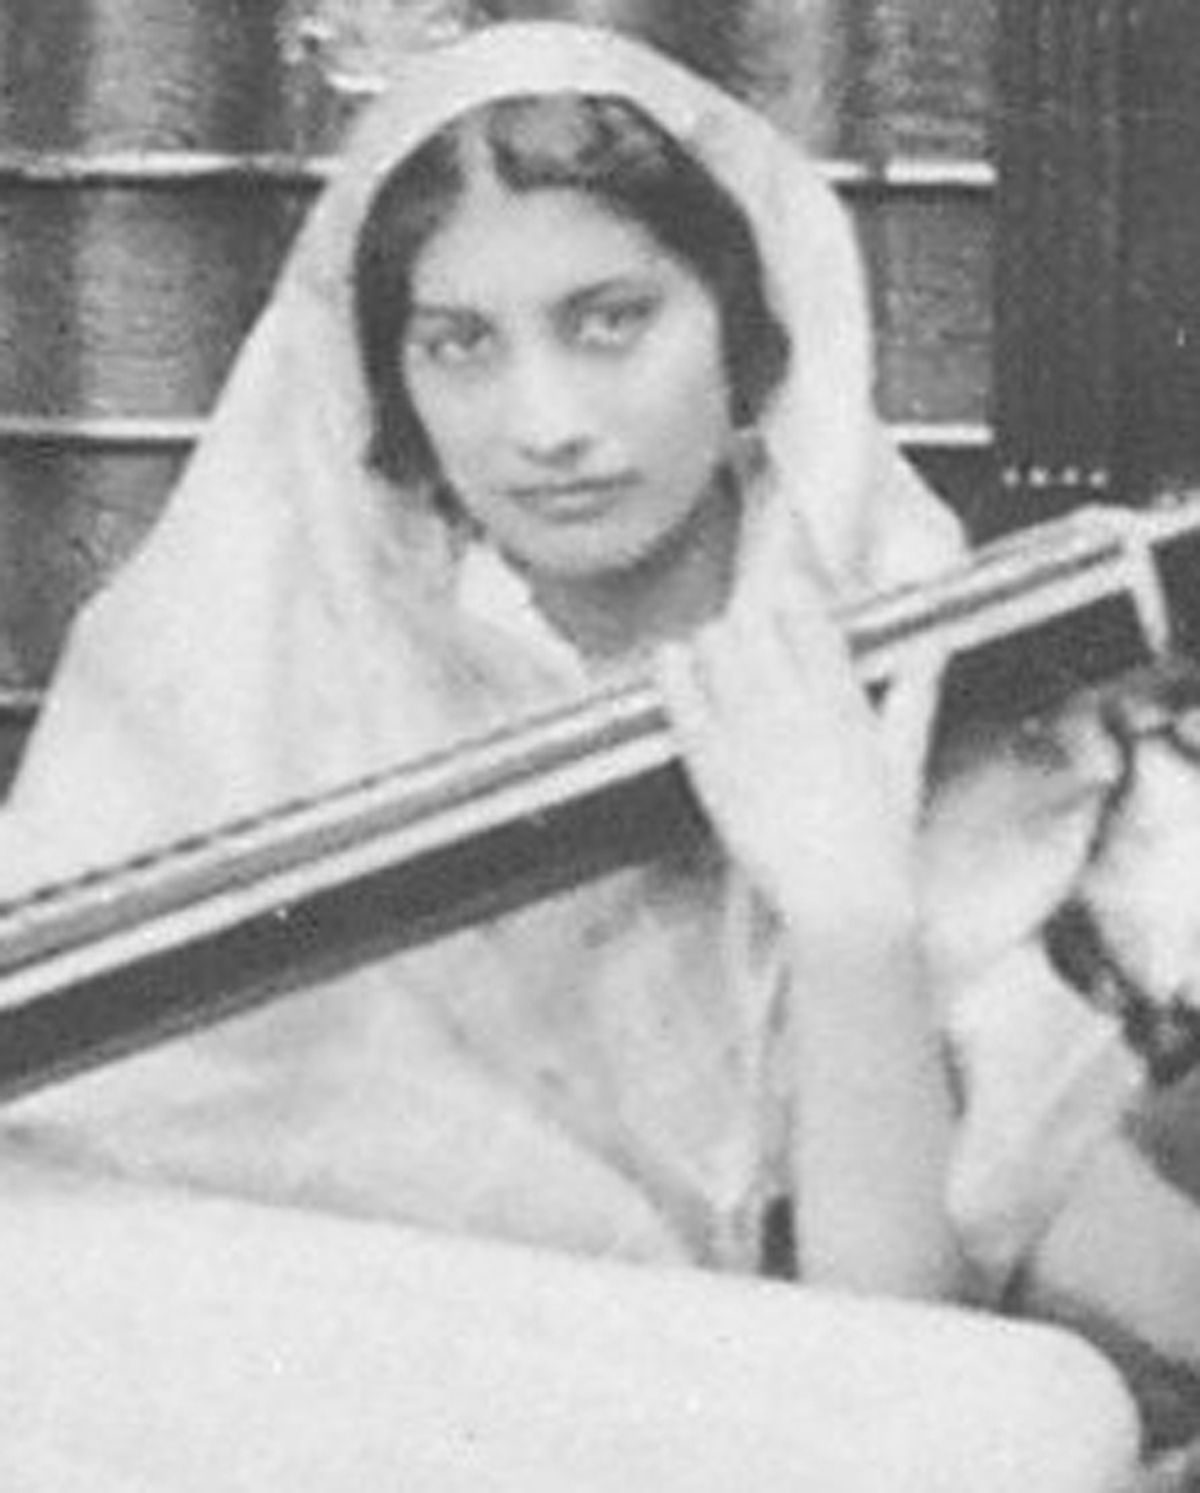 Noor Inayat Khan was awarded a posthumous George Cross for her work in the Second World War